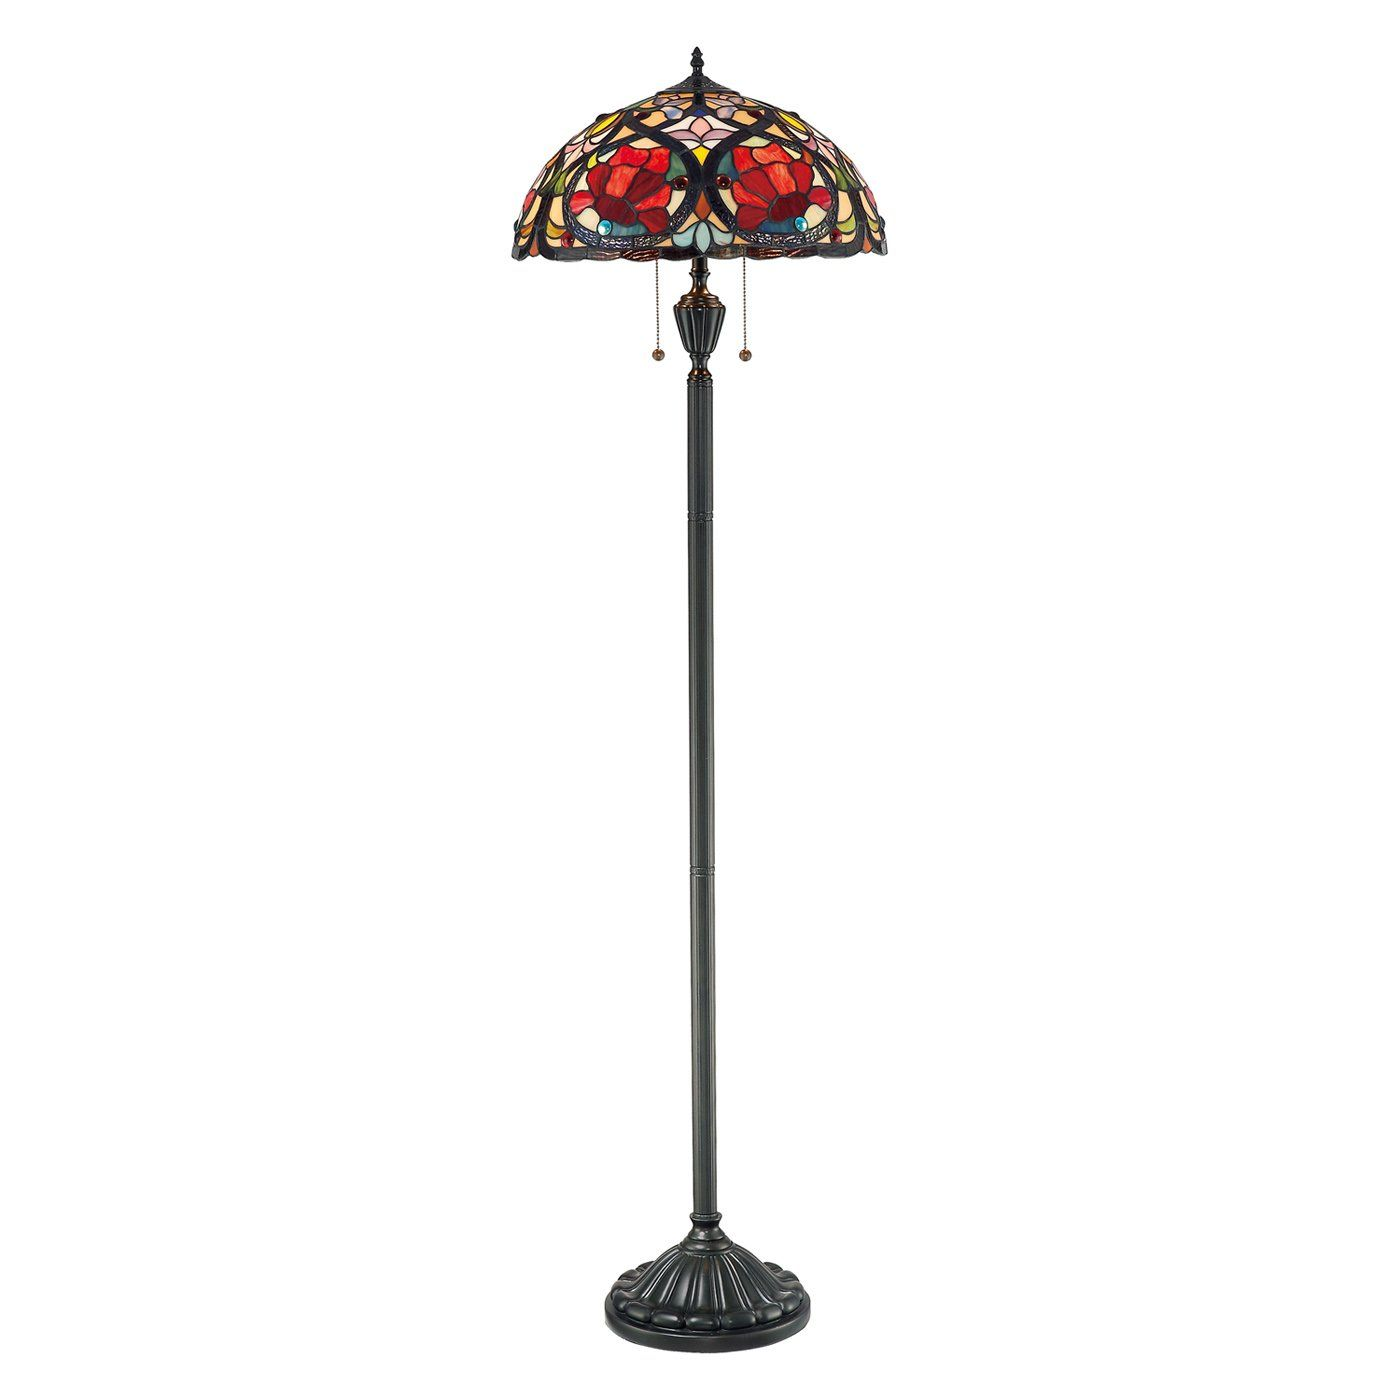 Tiffany Floor Lamp Glamorous Shop Quoizel Tf879F 2Light Larissa Tiffany Floor Lamp At Atg Stores Design Inspiration